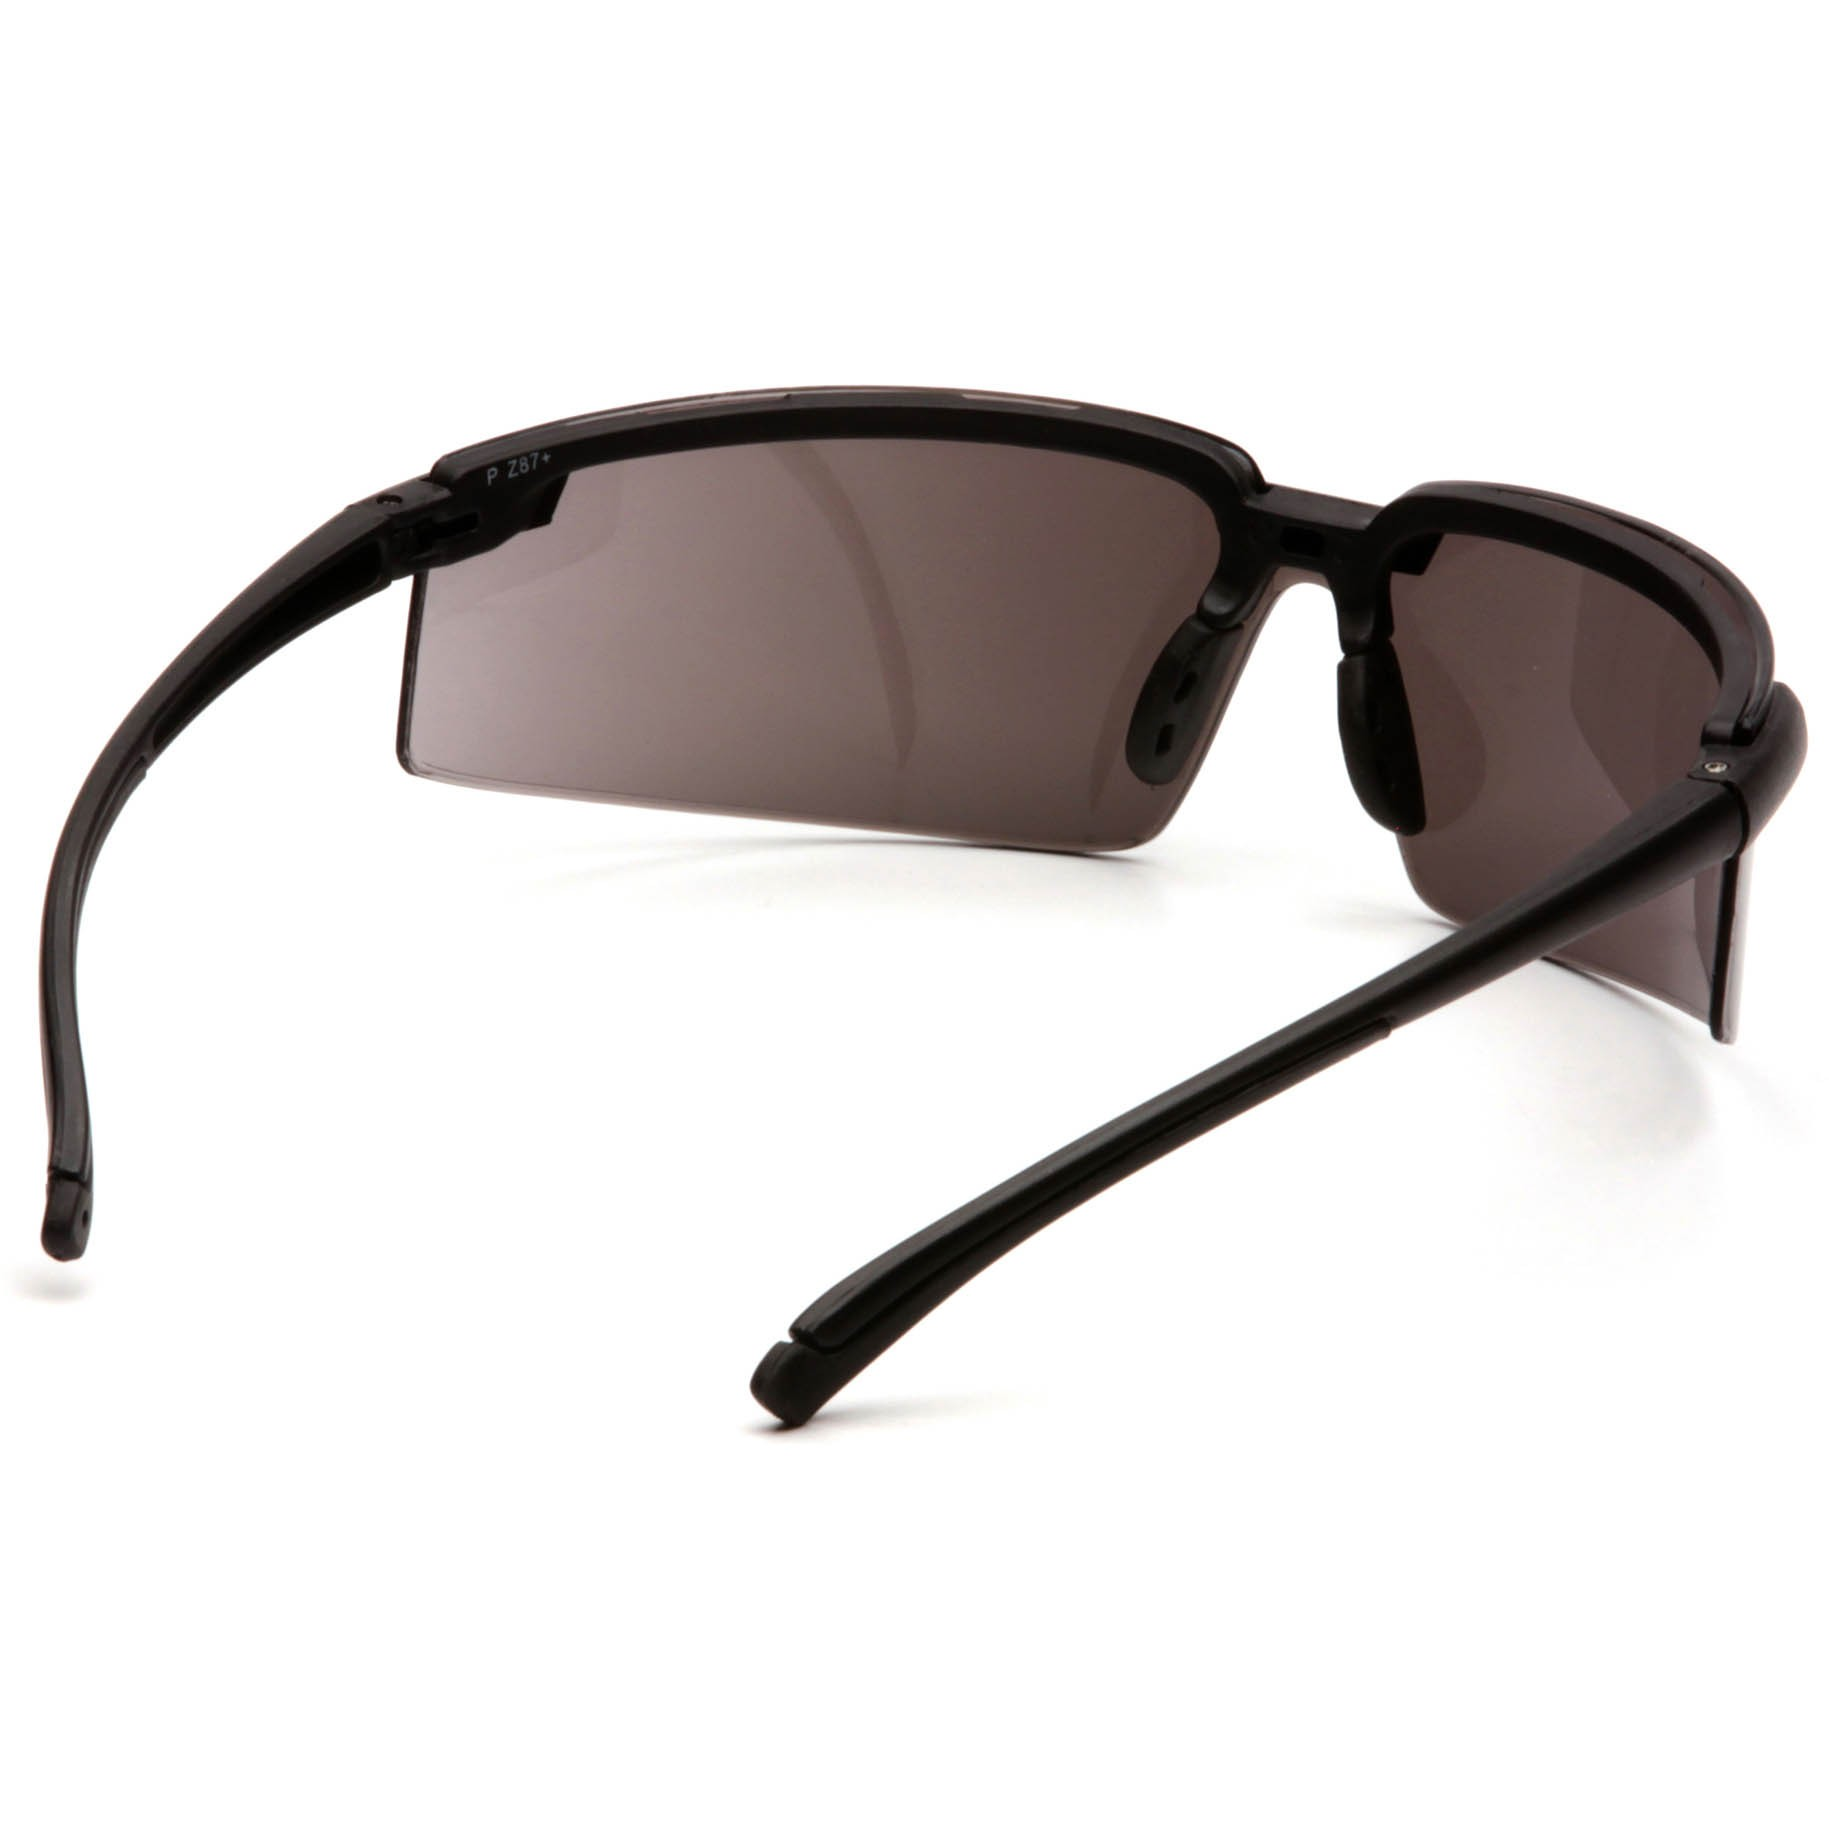 Safety Glasses Black Frame : Pyramex Surveyor Safety Glasses - Black Frame - Silver ...